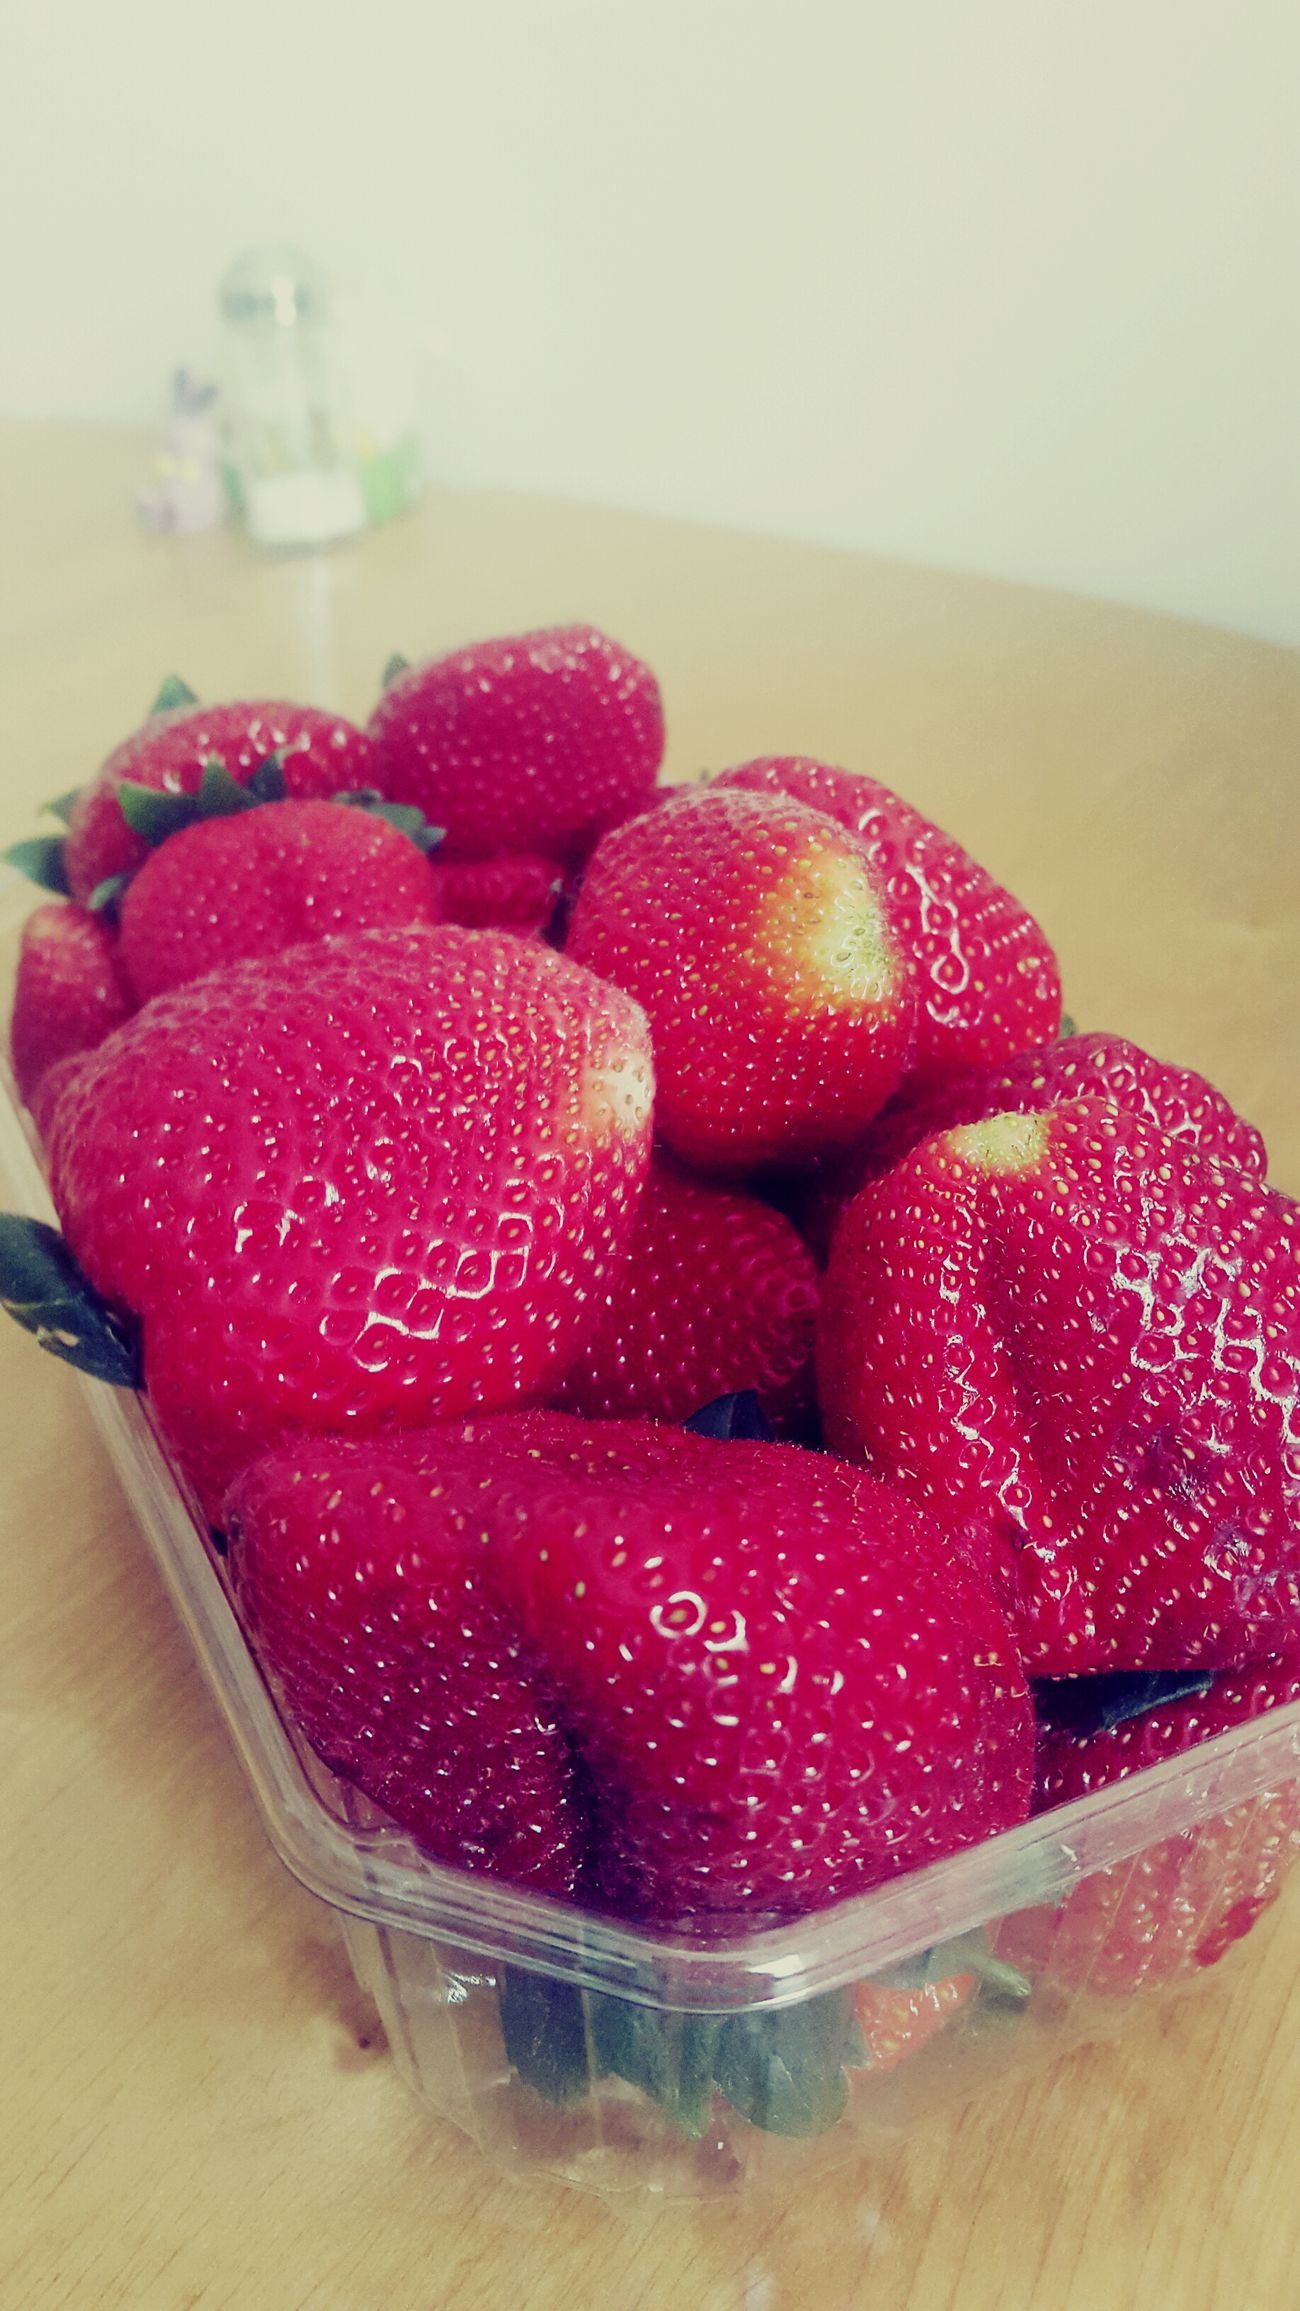 Summer feeling. Strawberries are the best! Strawberry Red Berries Summer Feeling Loveit Tasty